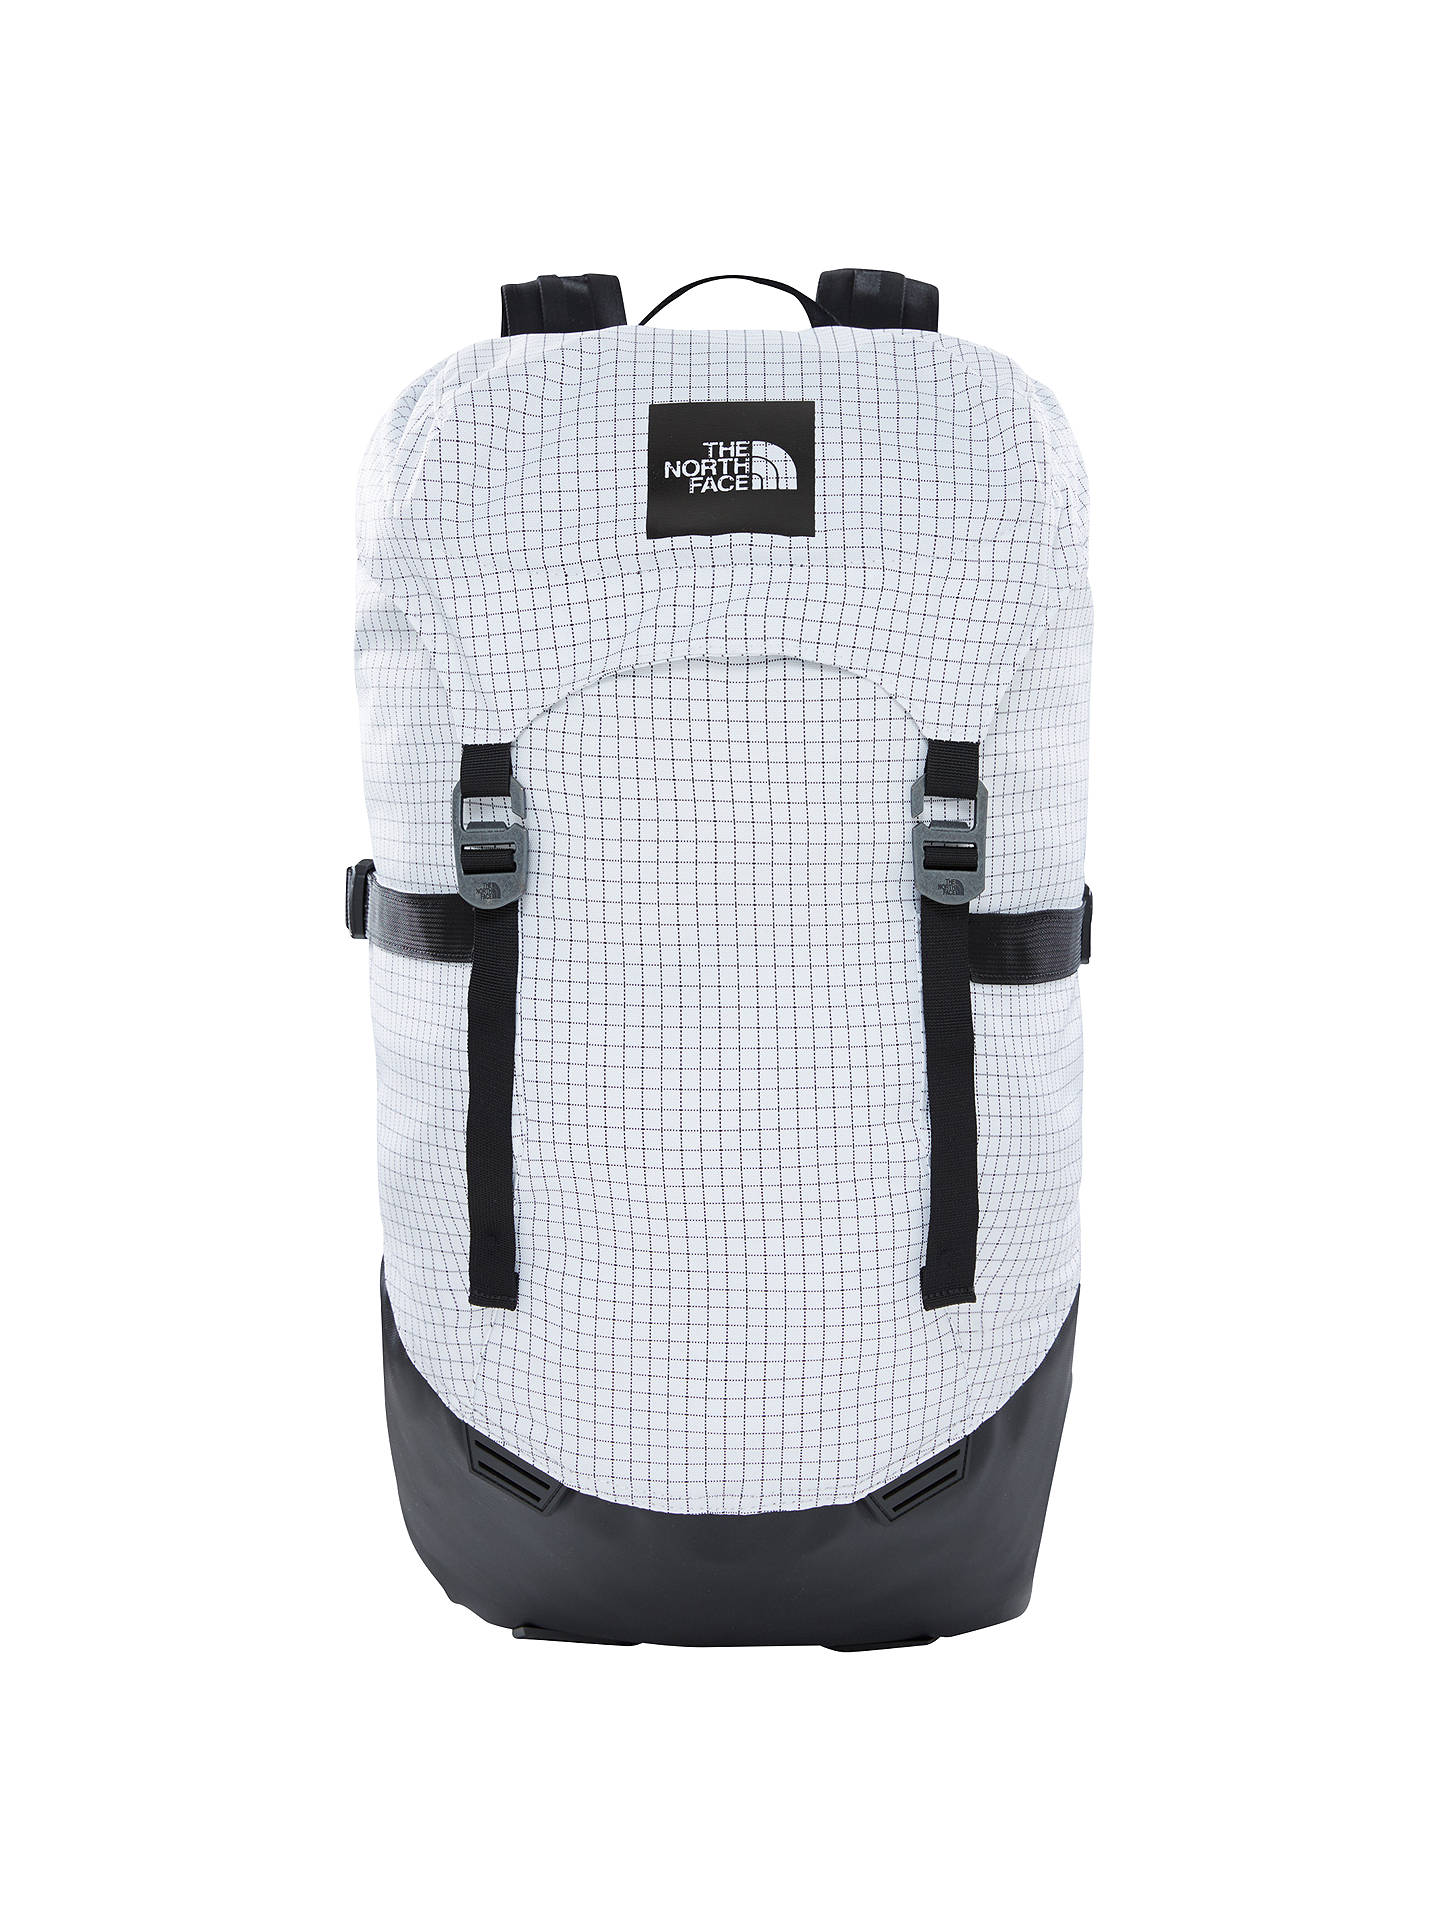 newest 0dde2 2e71c The North Face Homestead Roadtripper Backpack, White at John ...